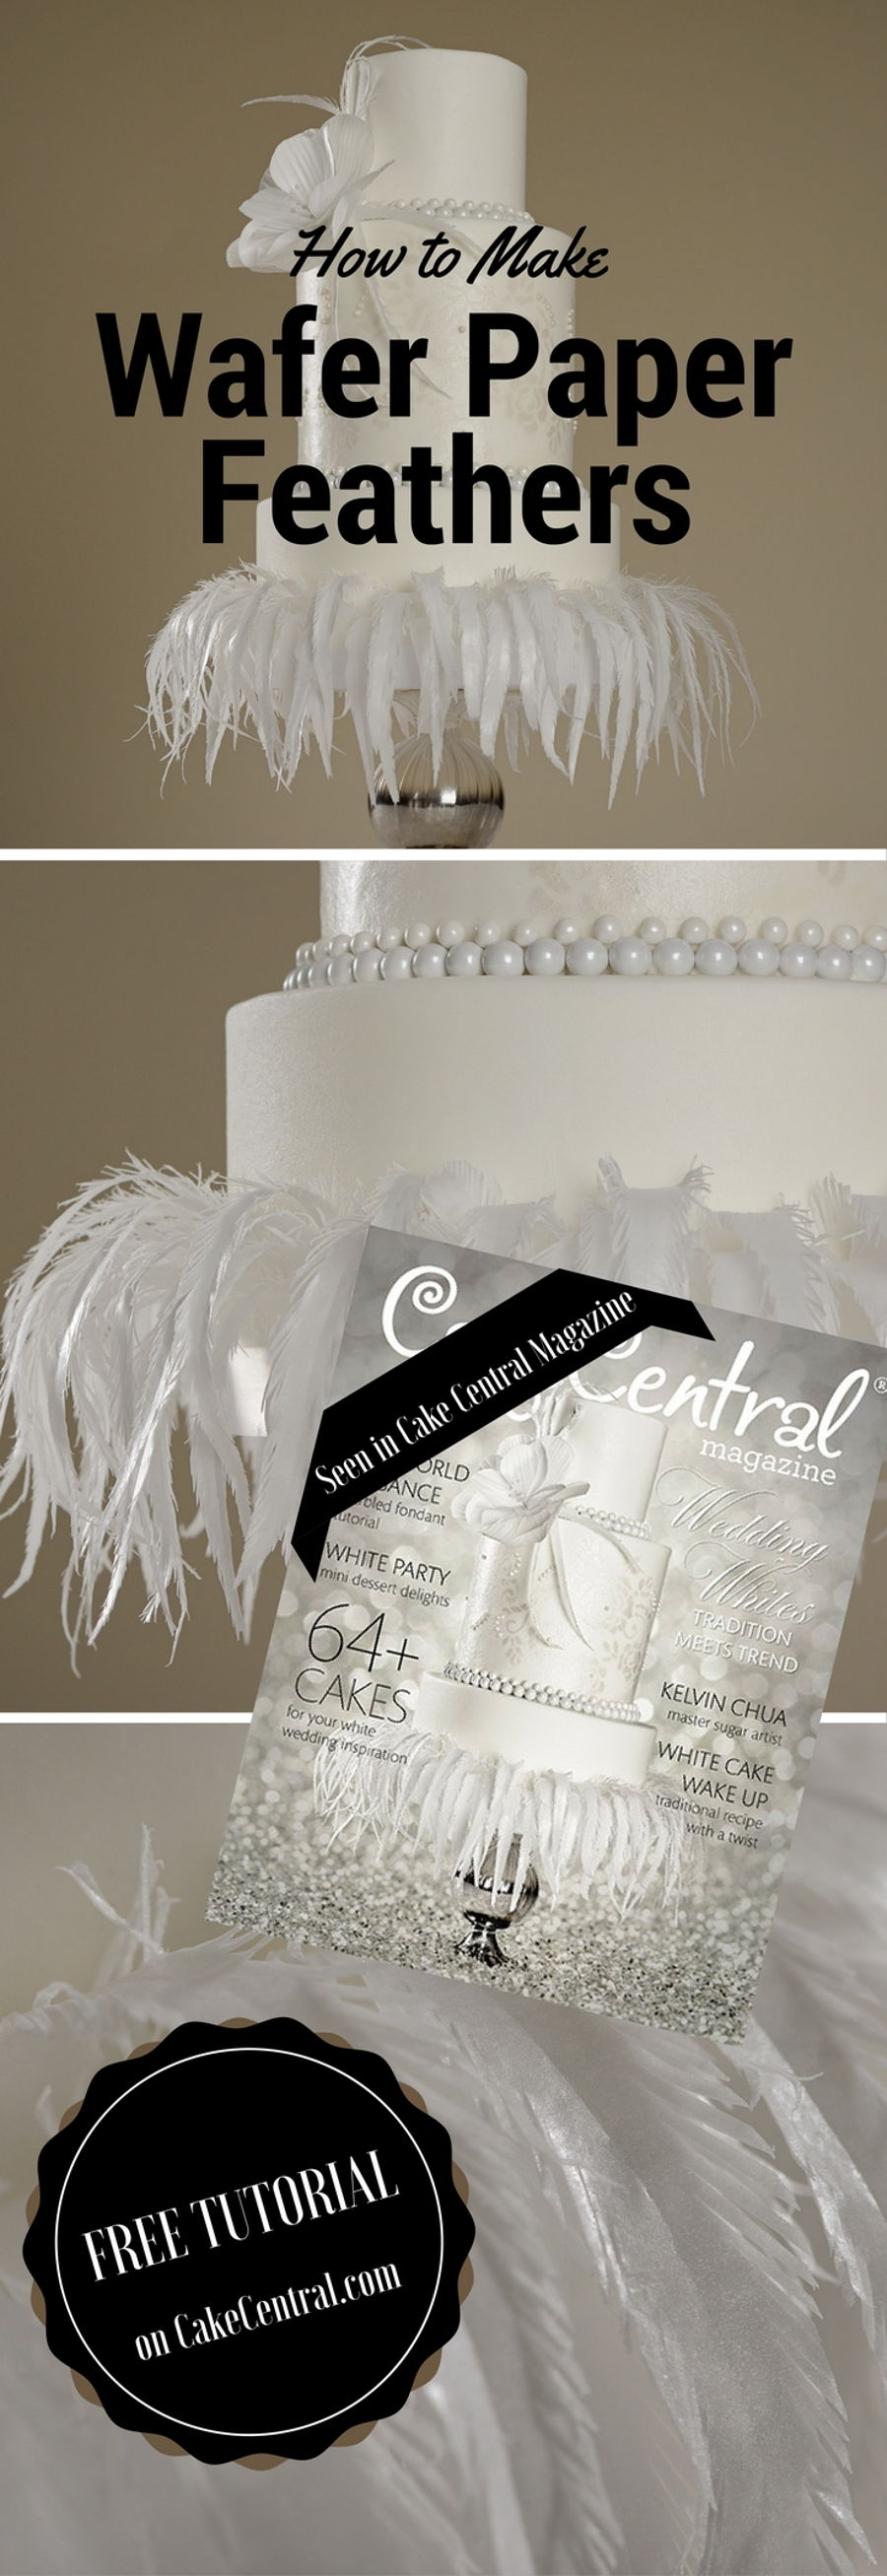 Wafer Paper Feathers  CakeCentralcom